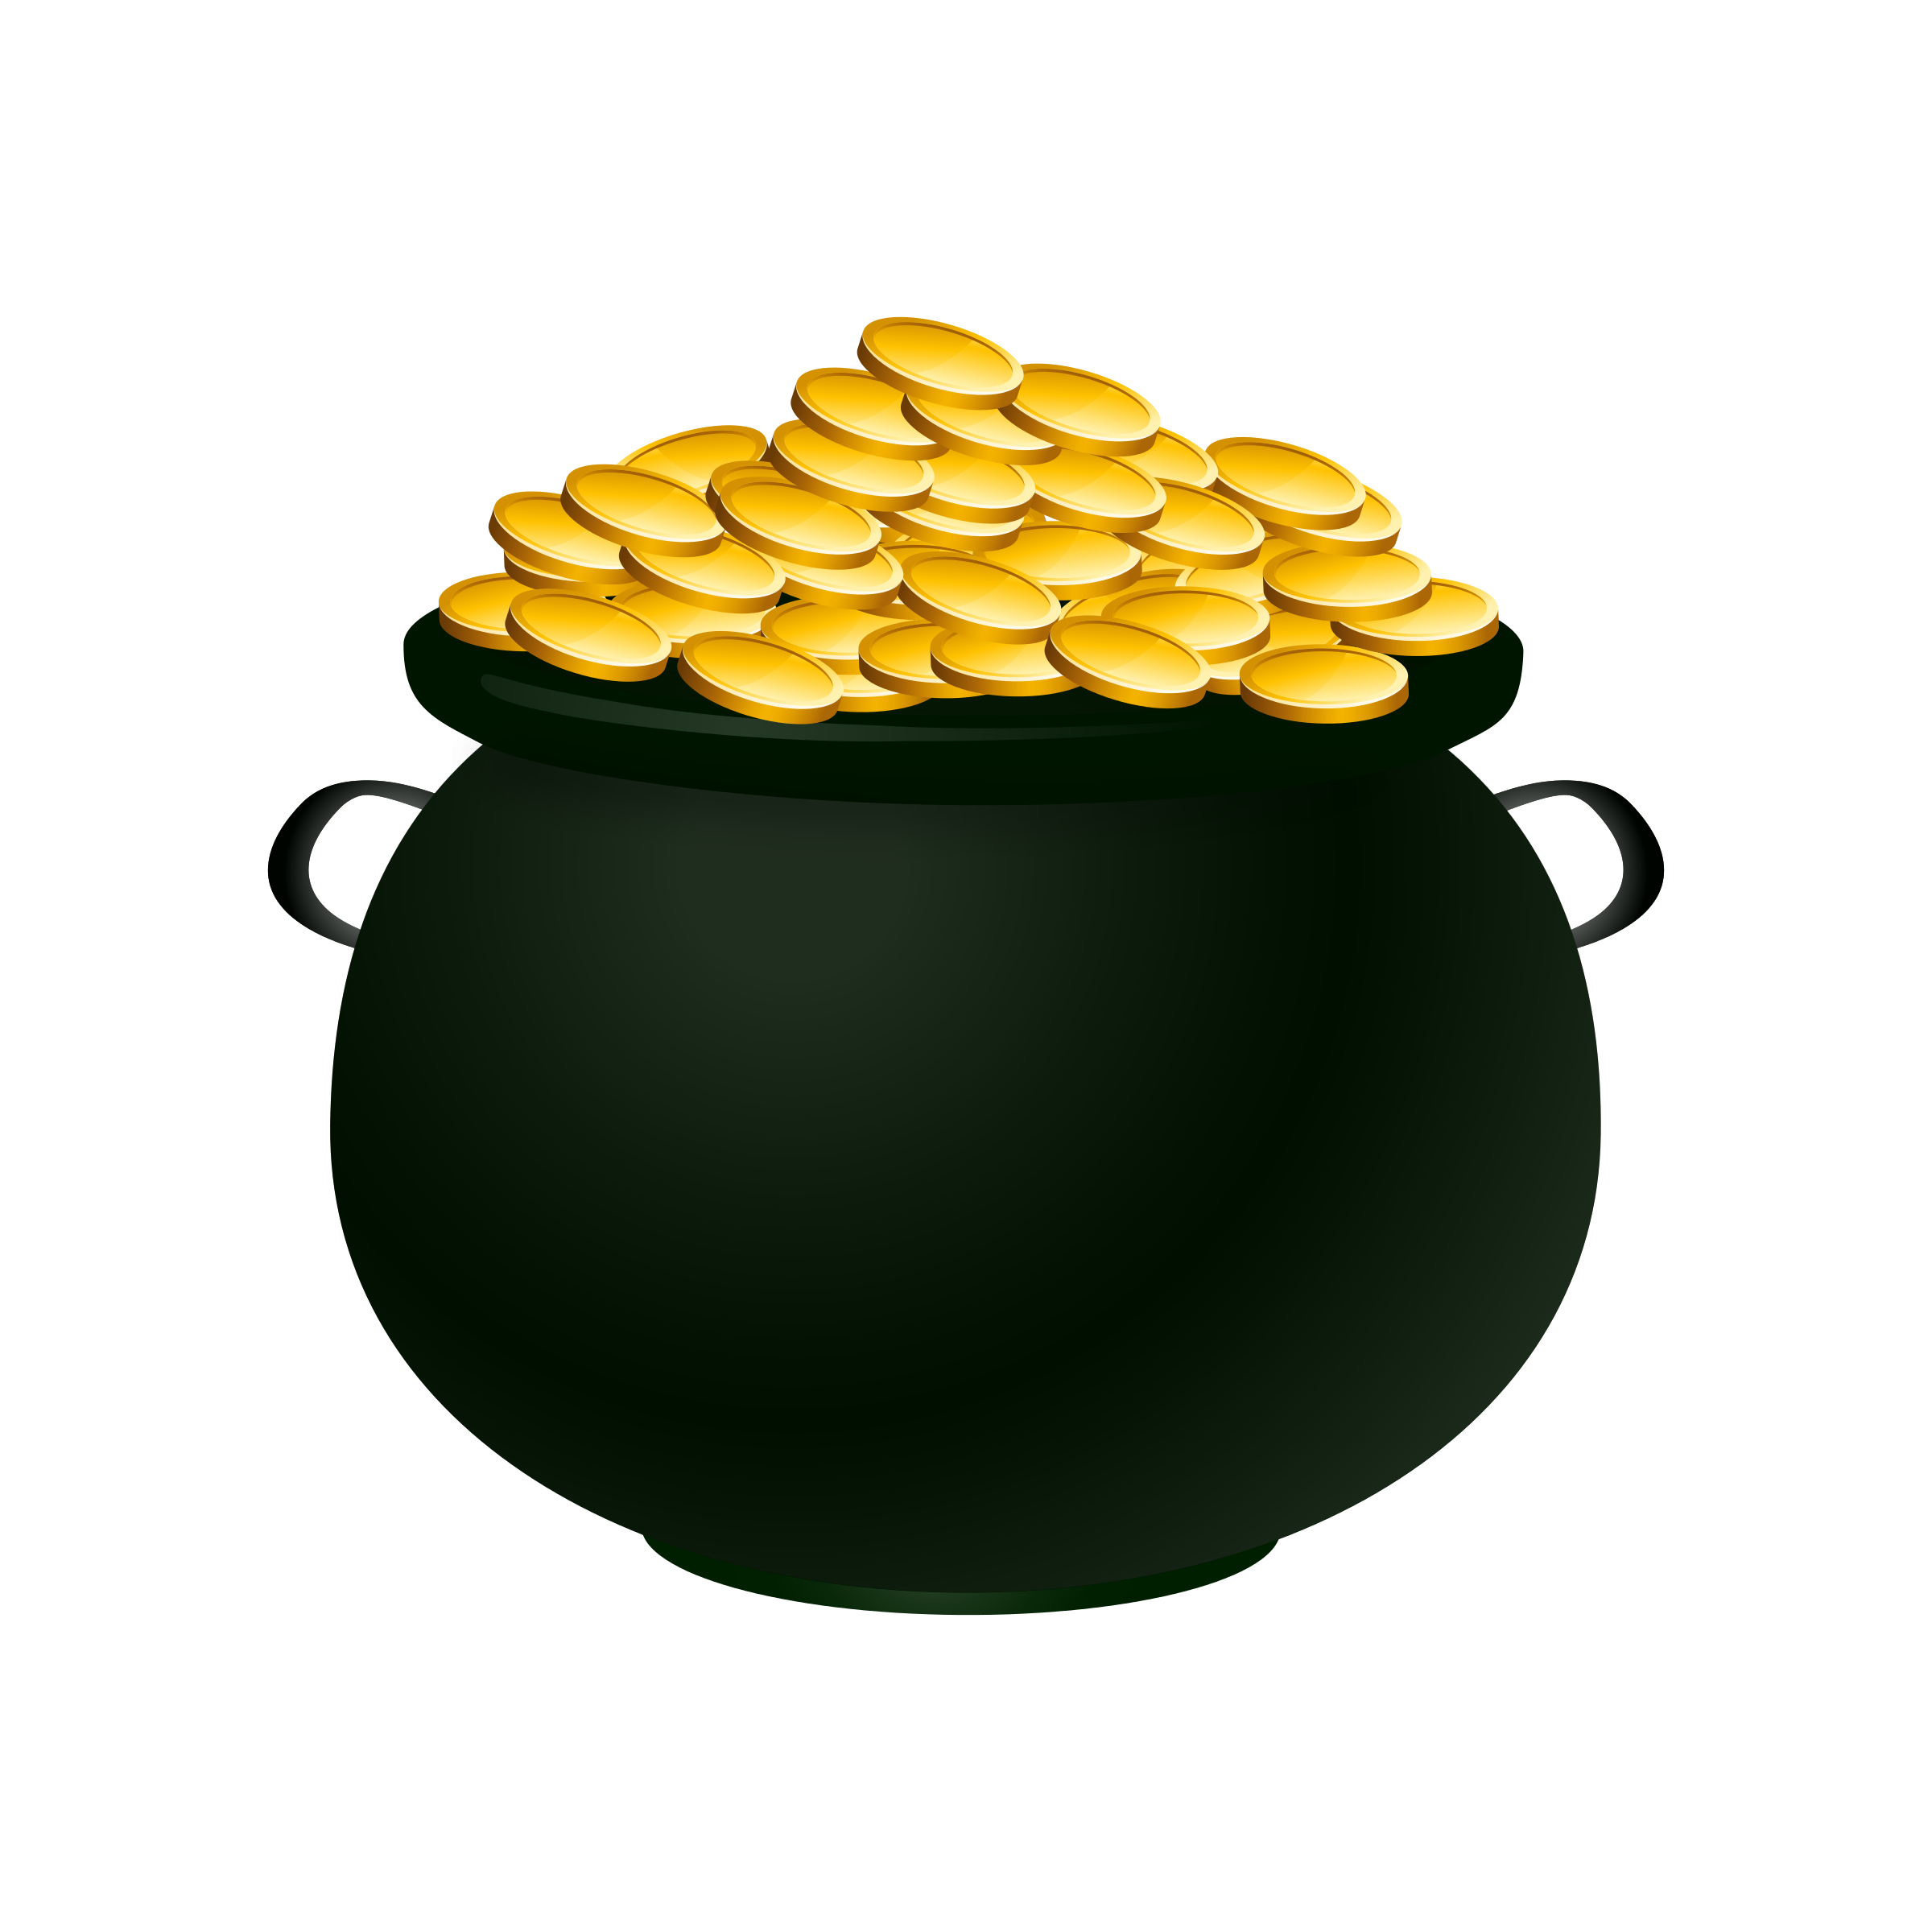 Green Pot Of Gold Clipart Image Pot Of Gold - Cl...